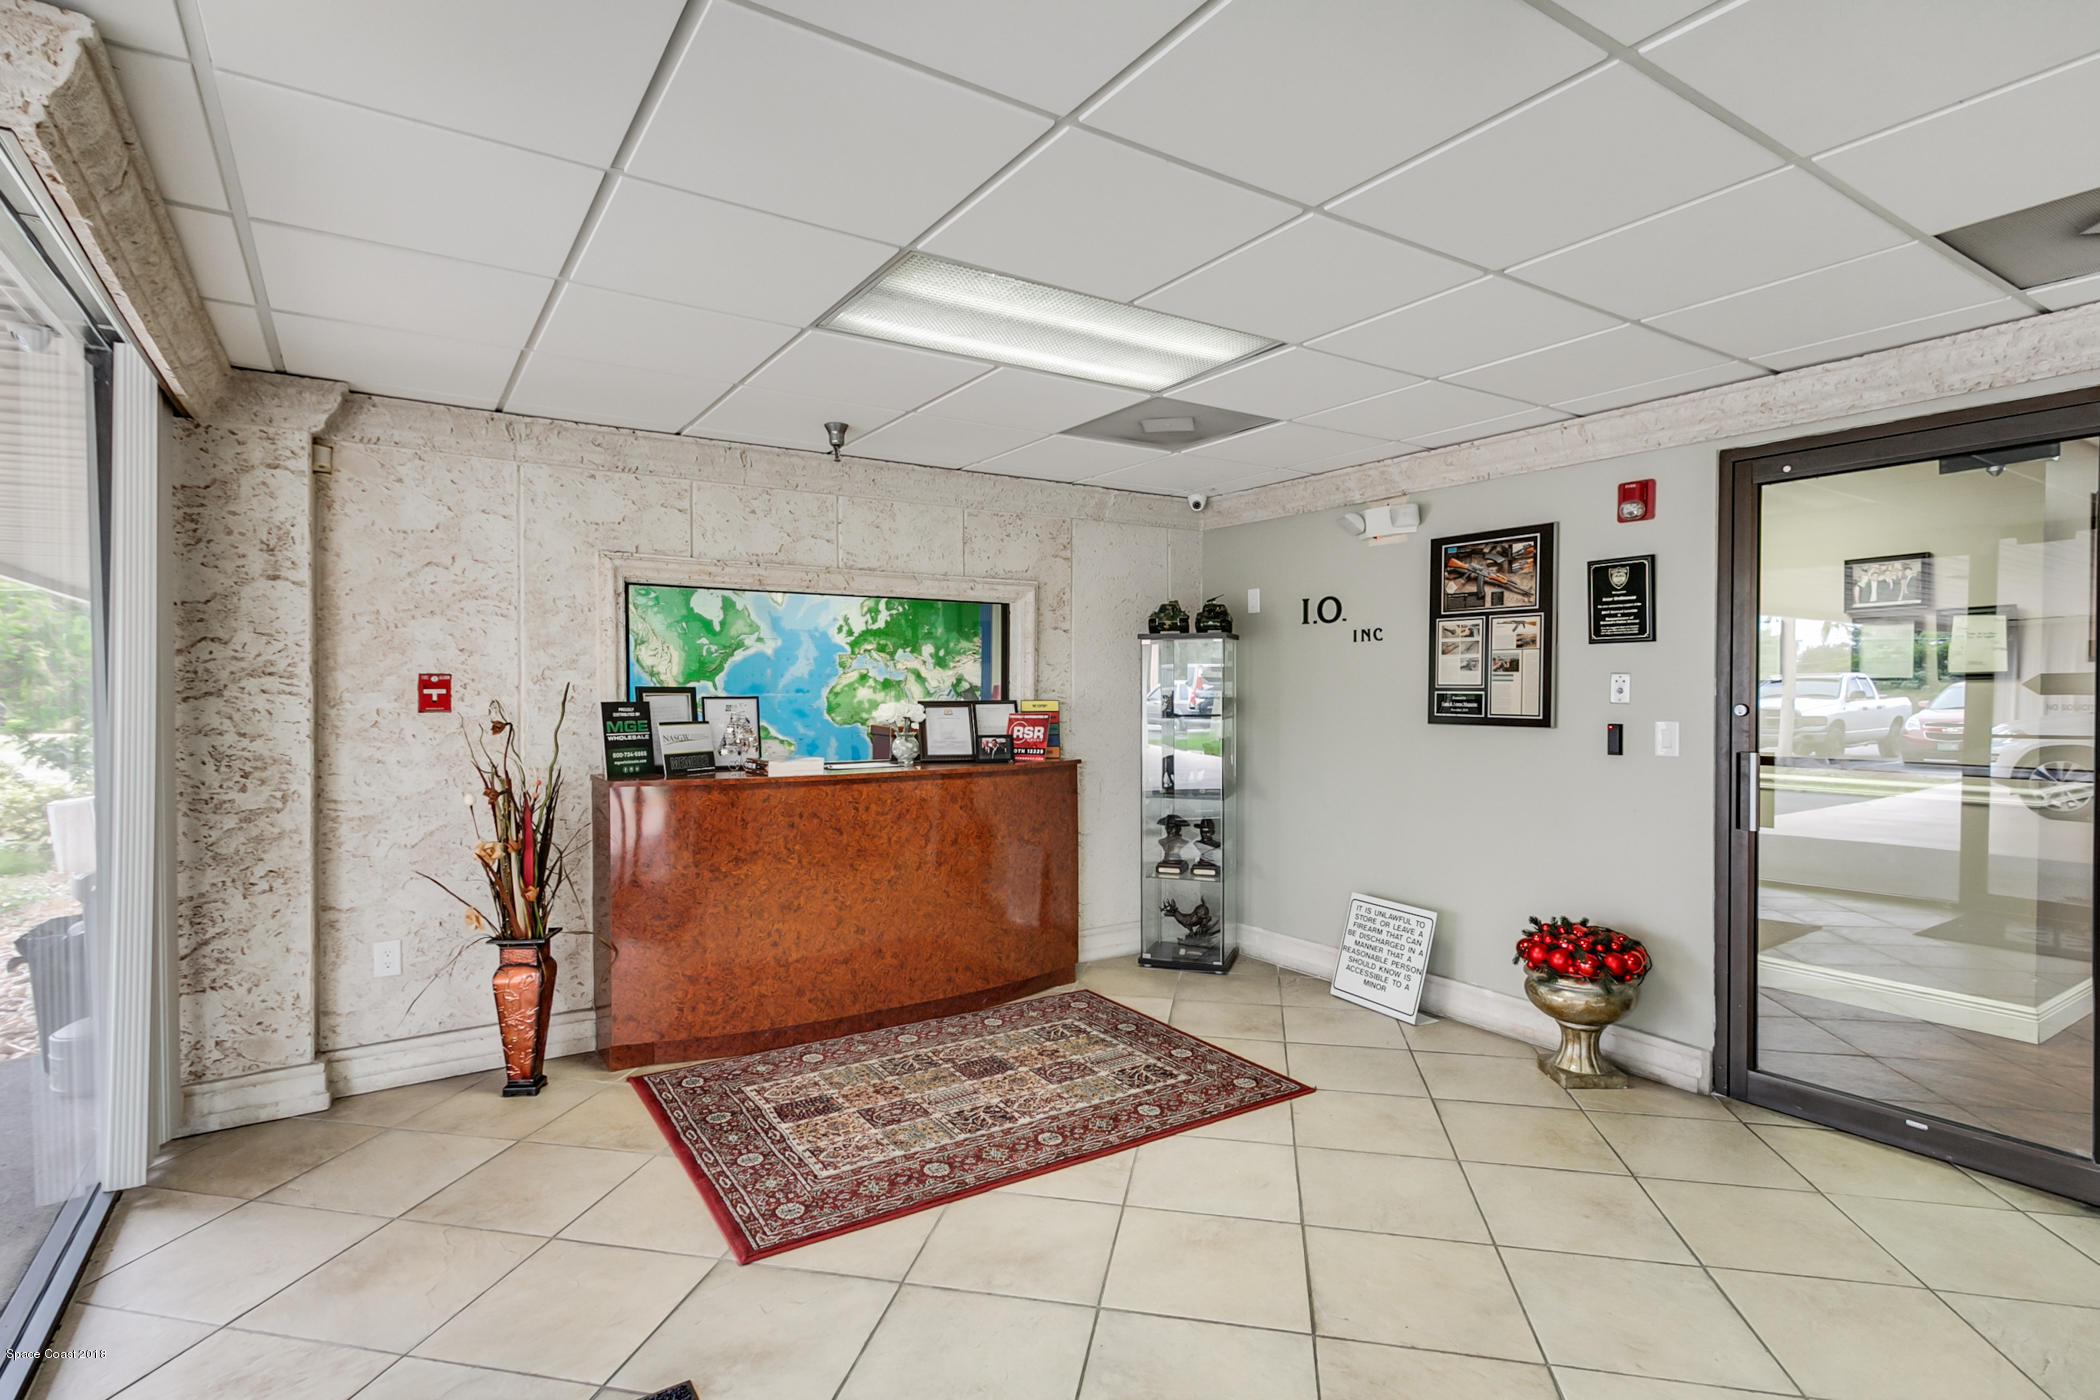 Additional photo for property listing at 2144 NE Franklin Drive 2144 NE Franklin Drive Palm Bay, Florida 32905 United States